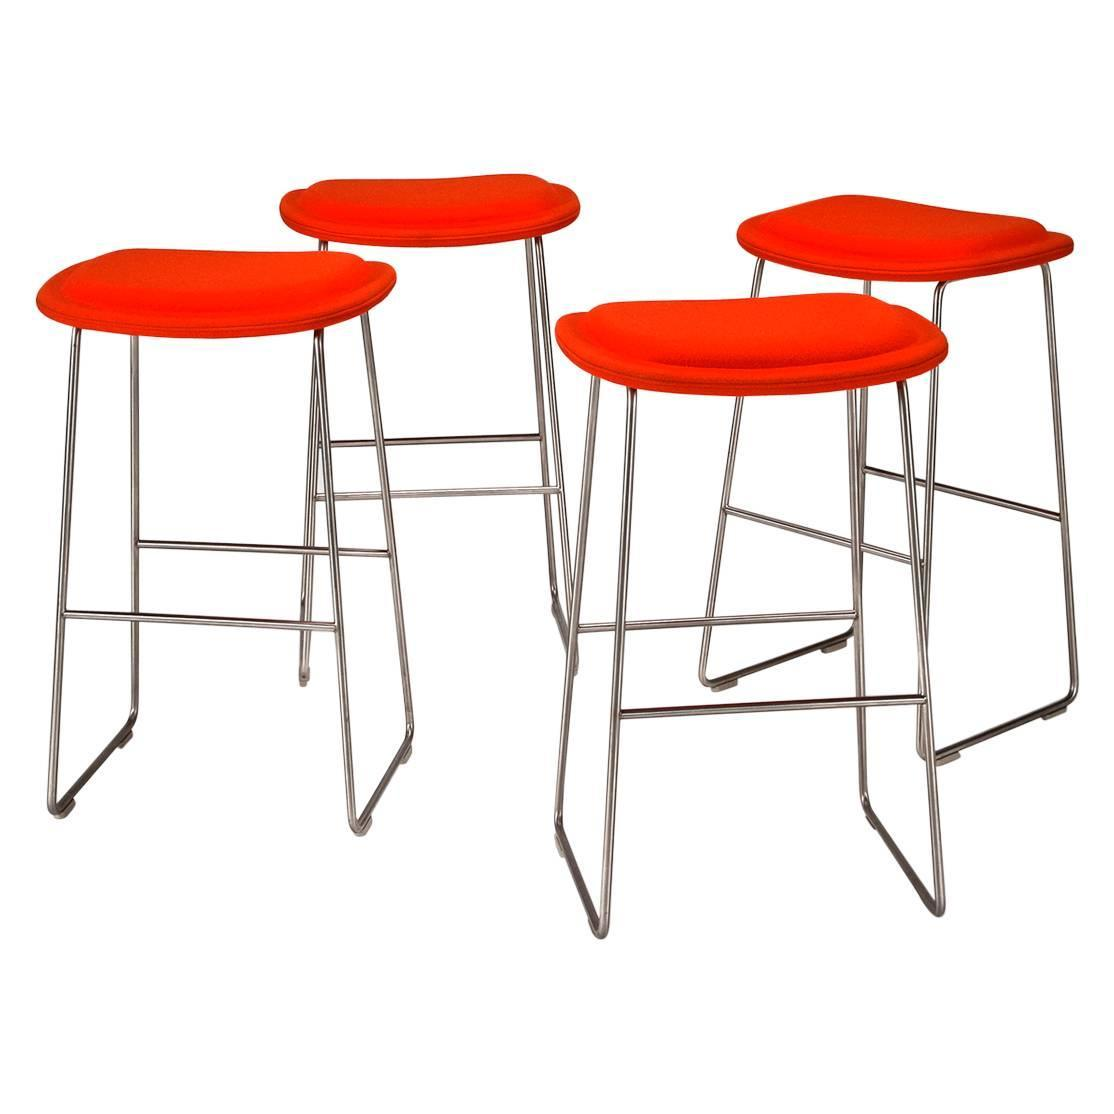 Outstanding Hi Pad Bar Stools Set Of Four By Jasper Morrison For Squirreltailoven Fun Painted Chair Ideas Images Squirreltailovenorg